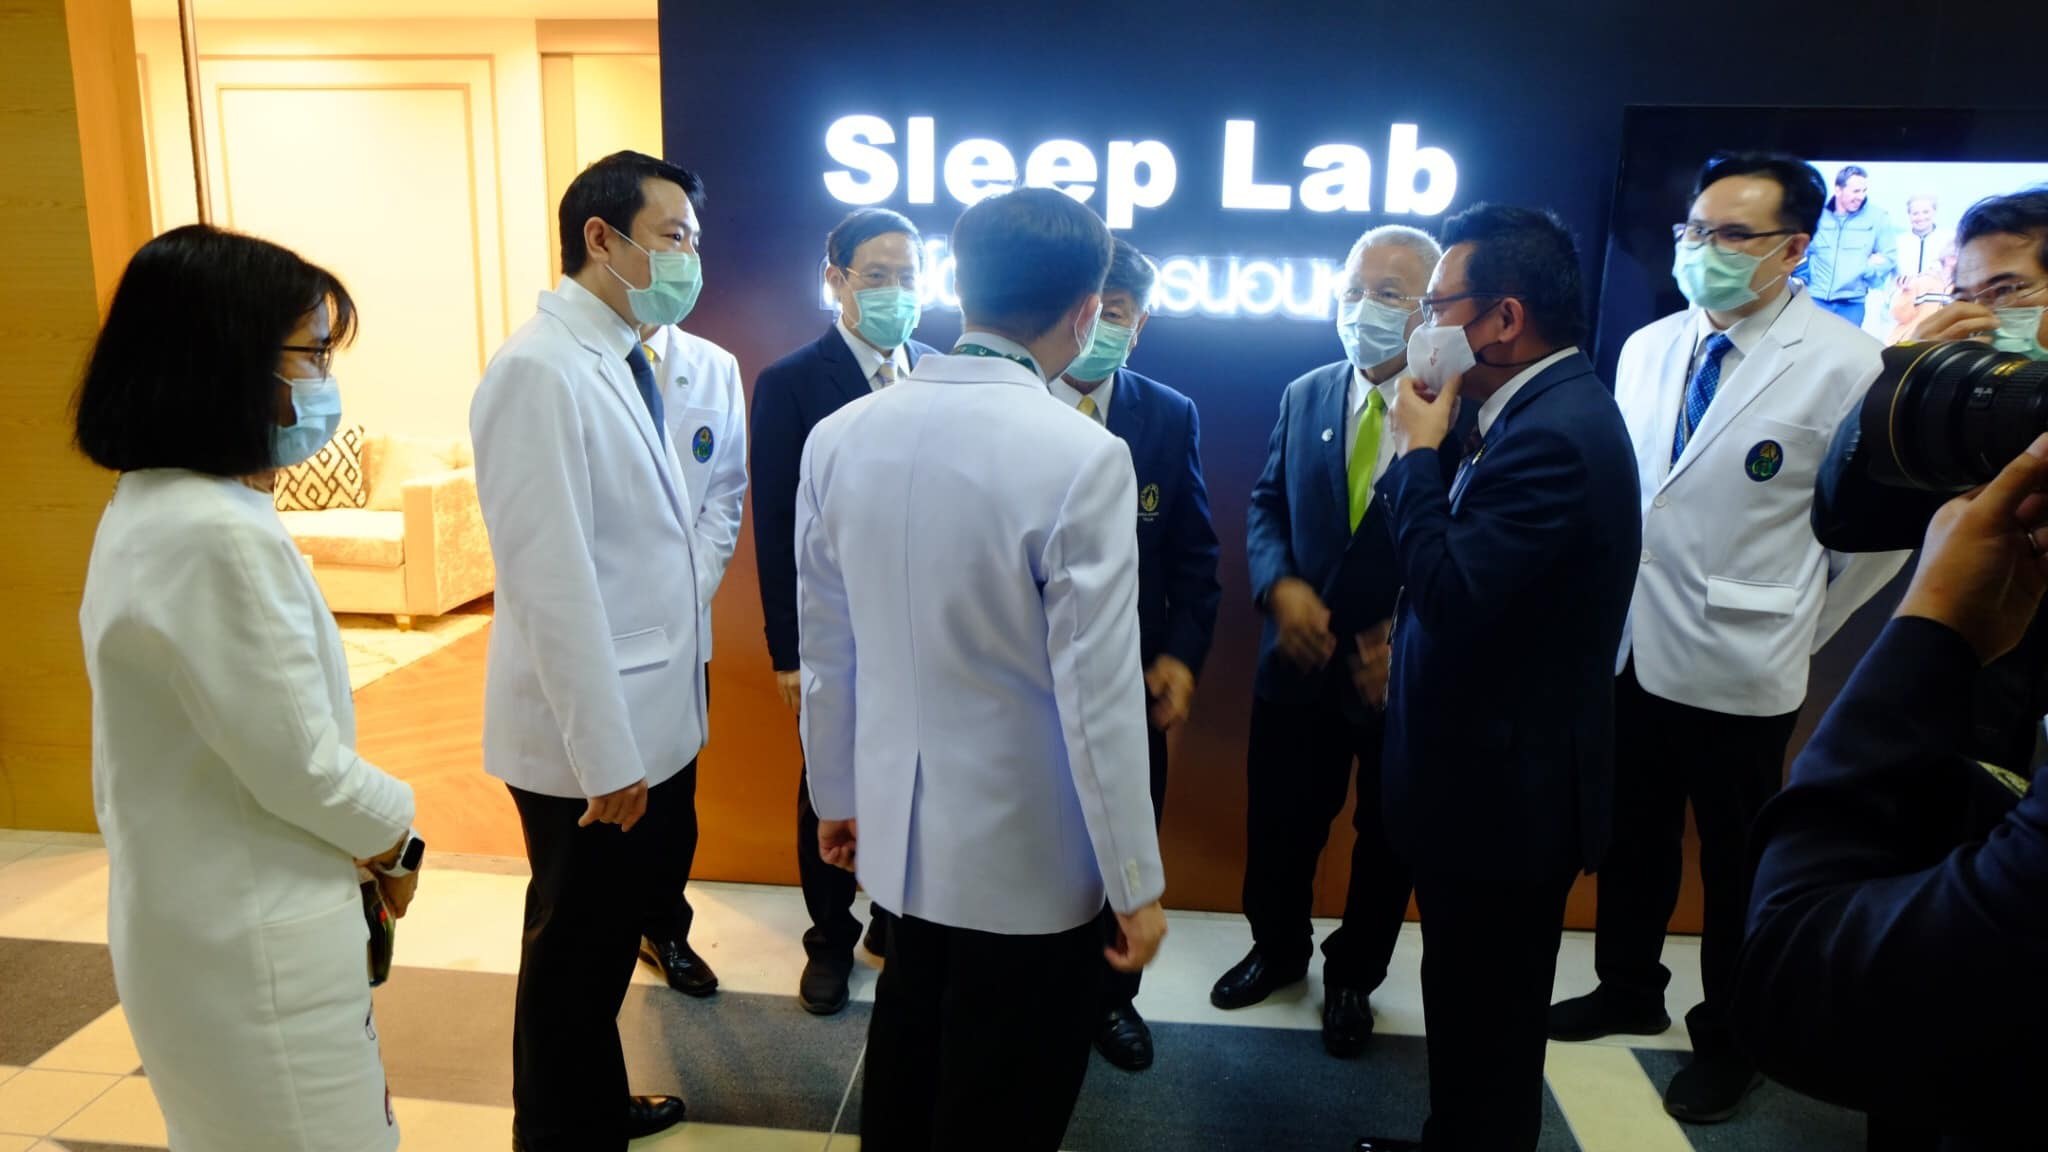 new sleep lab